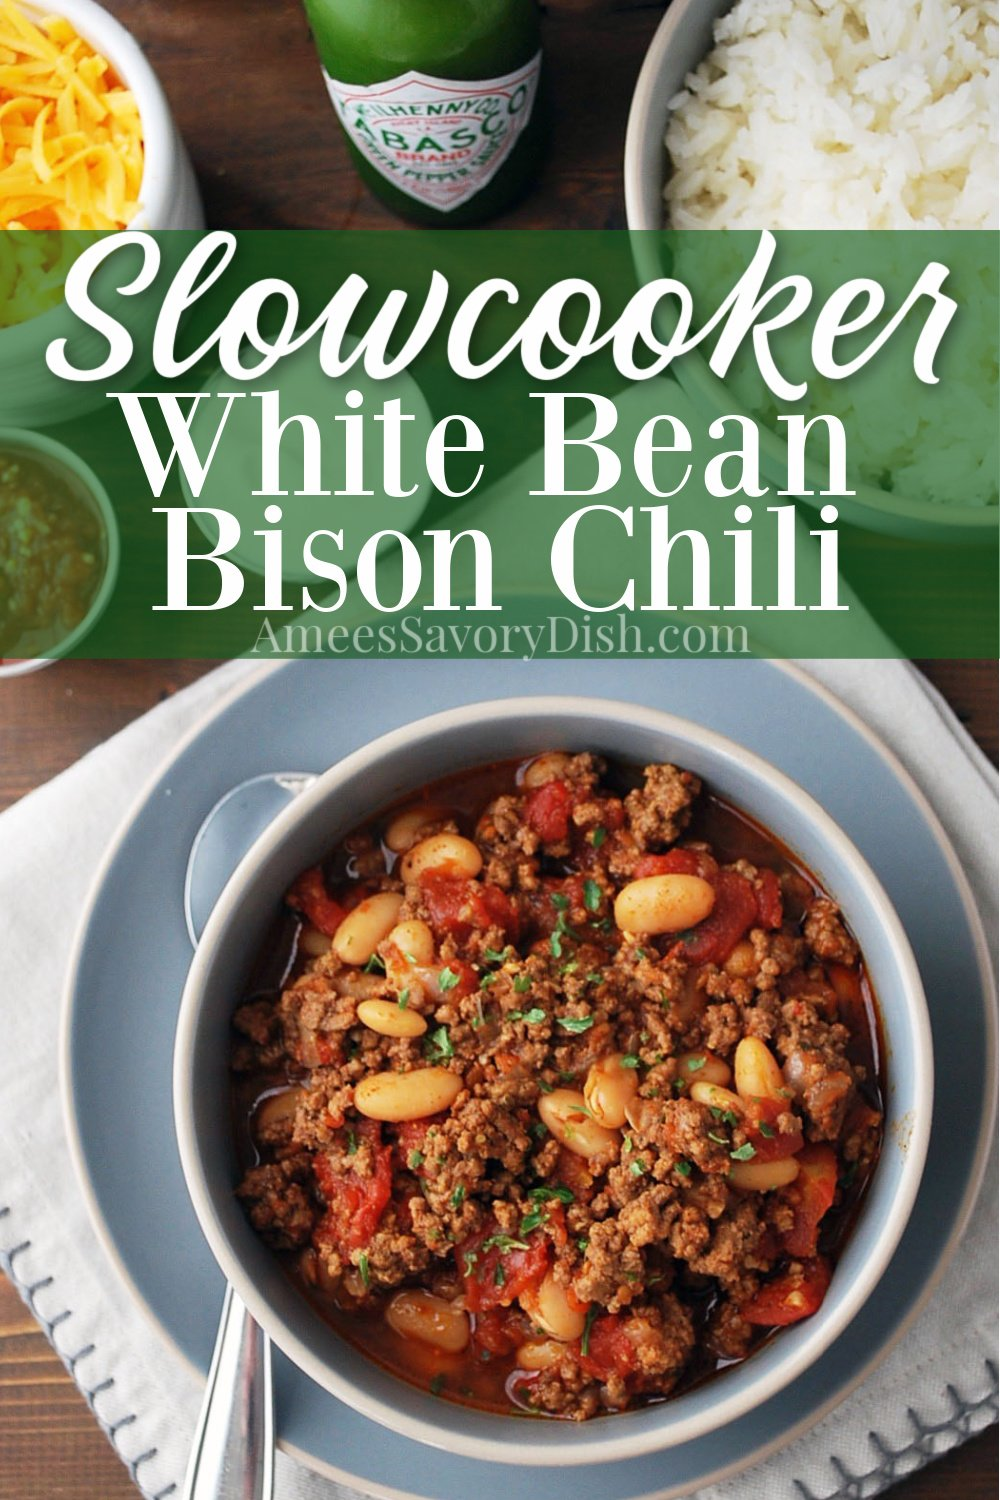 White bean bison chili is a healthier slow cooker chili recipe, loaded with excellent protein, fiber, lycopene, and good quality carbohydrates. Not to mention, it's super easy to make and incredibly delicious!! #bisonchili #bisonrecipe #chilirecipe #slowcookerchili #slowcookerrecipe #crockpotchili via @Ameessavorydish